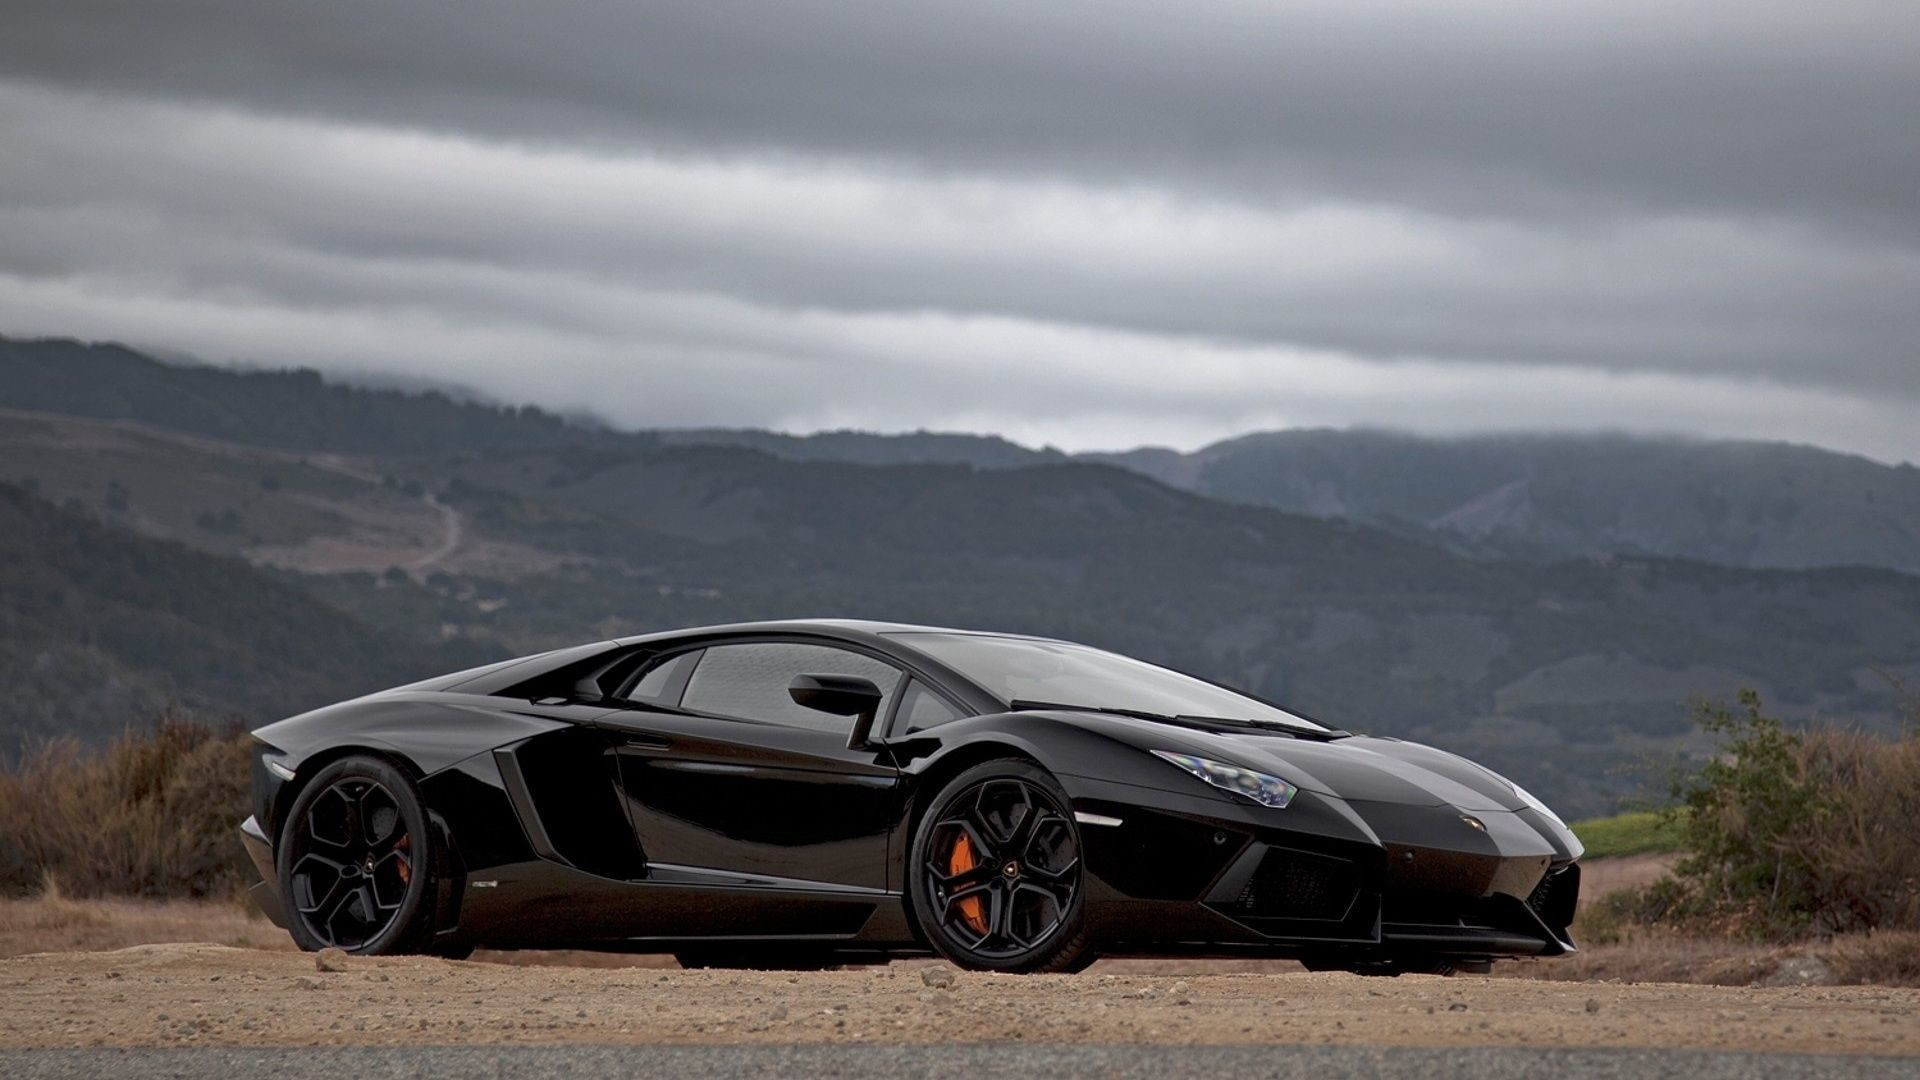 Res: 1920x1080, Lamborghini Aventador Black, why not